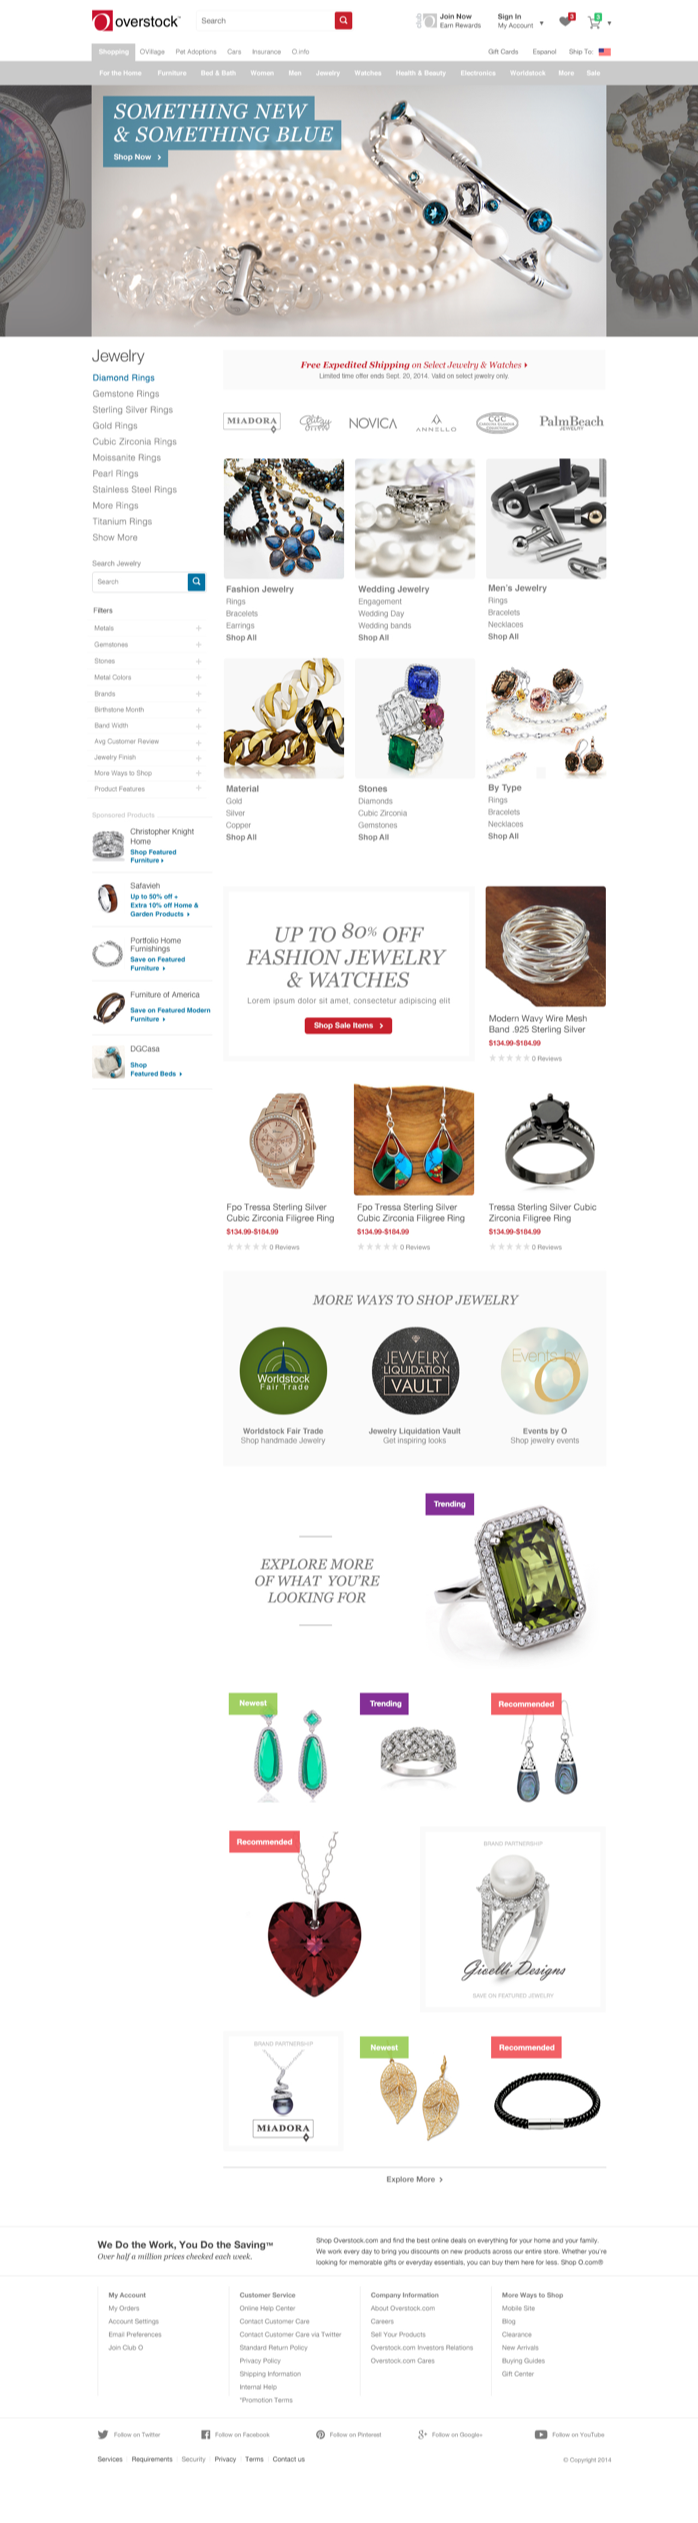 Overstock_Jewelry_0913b.png